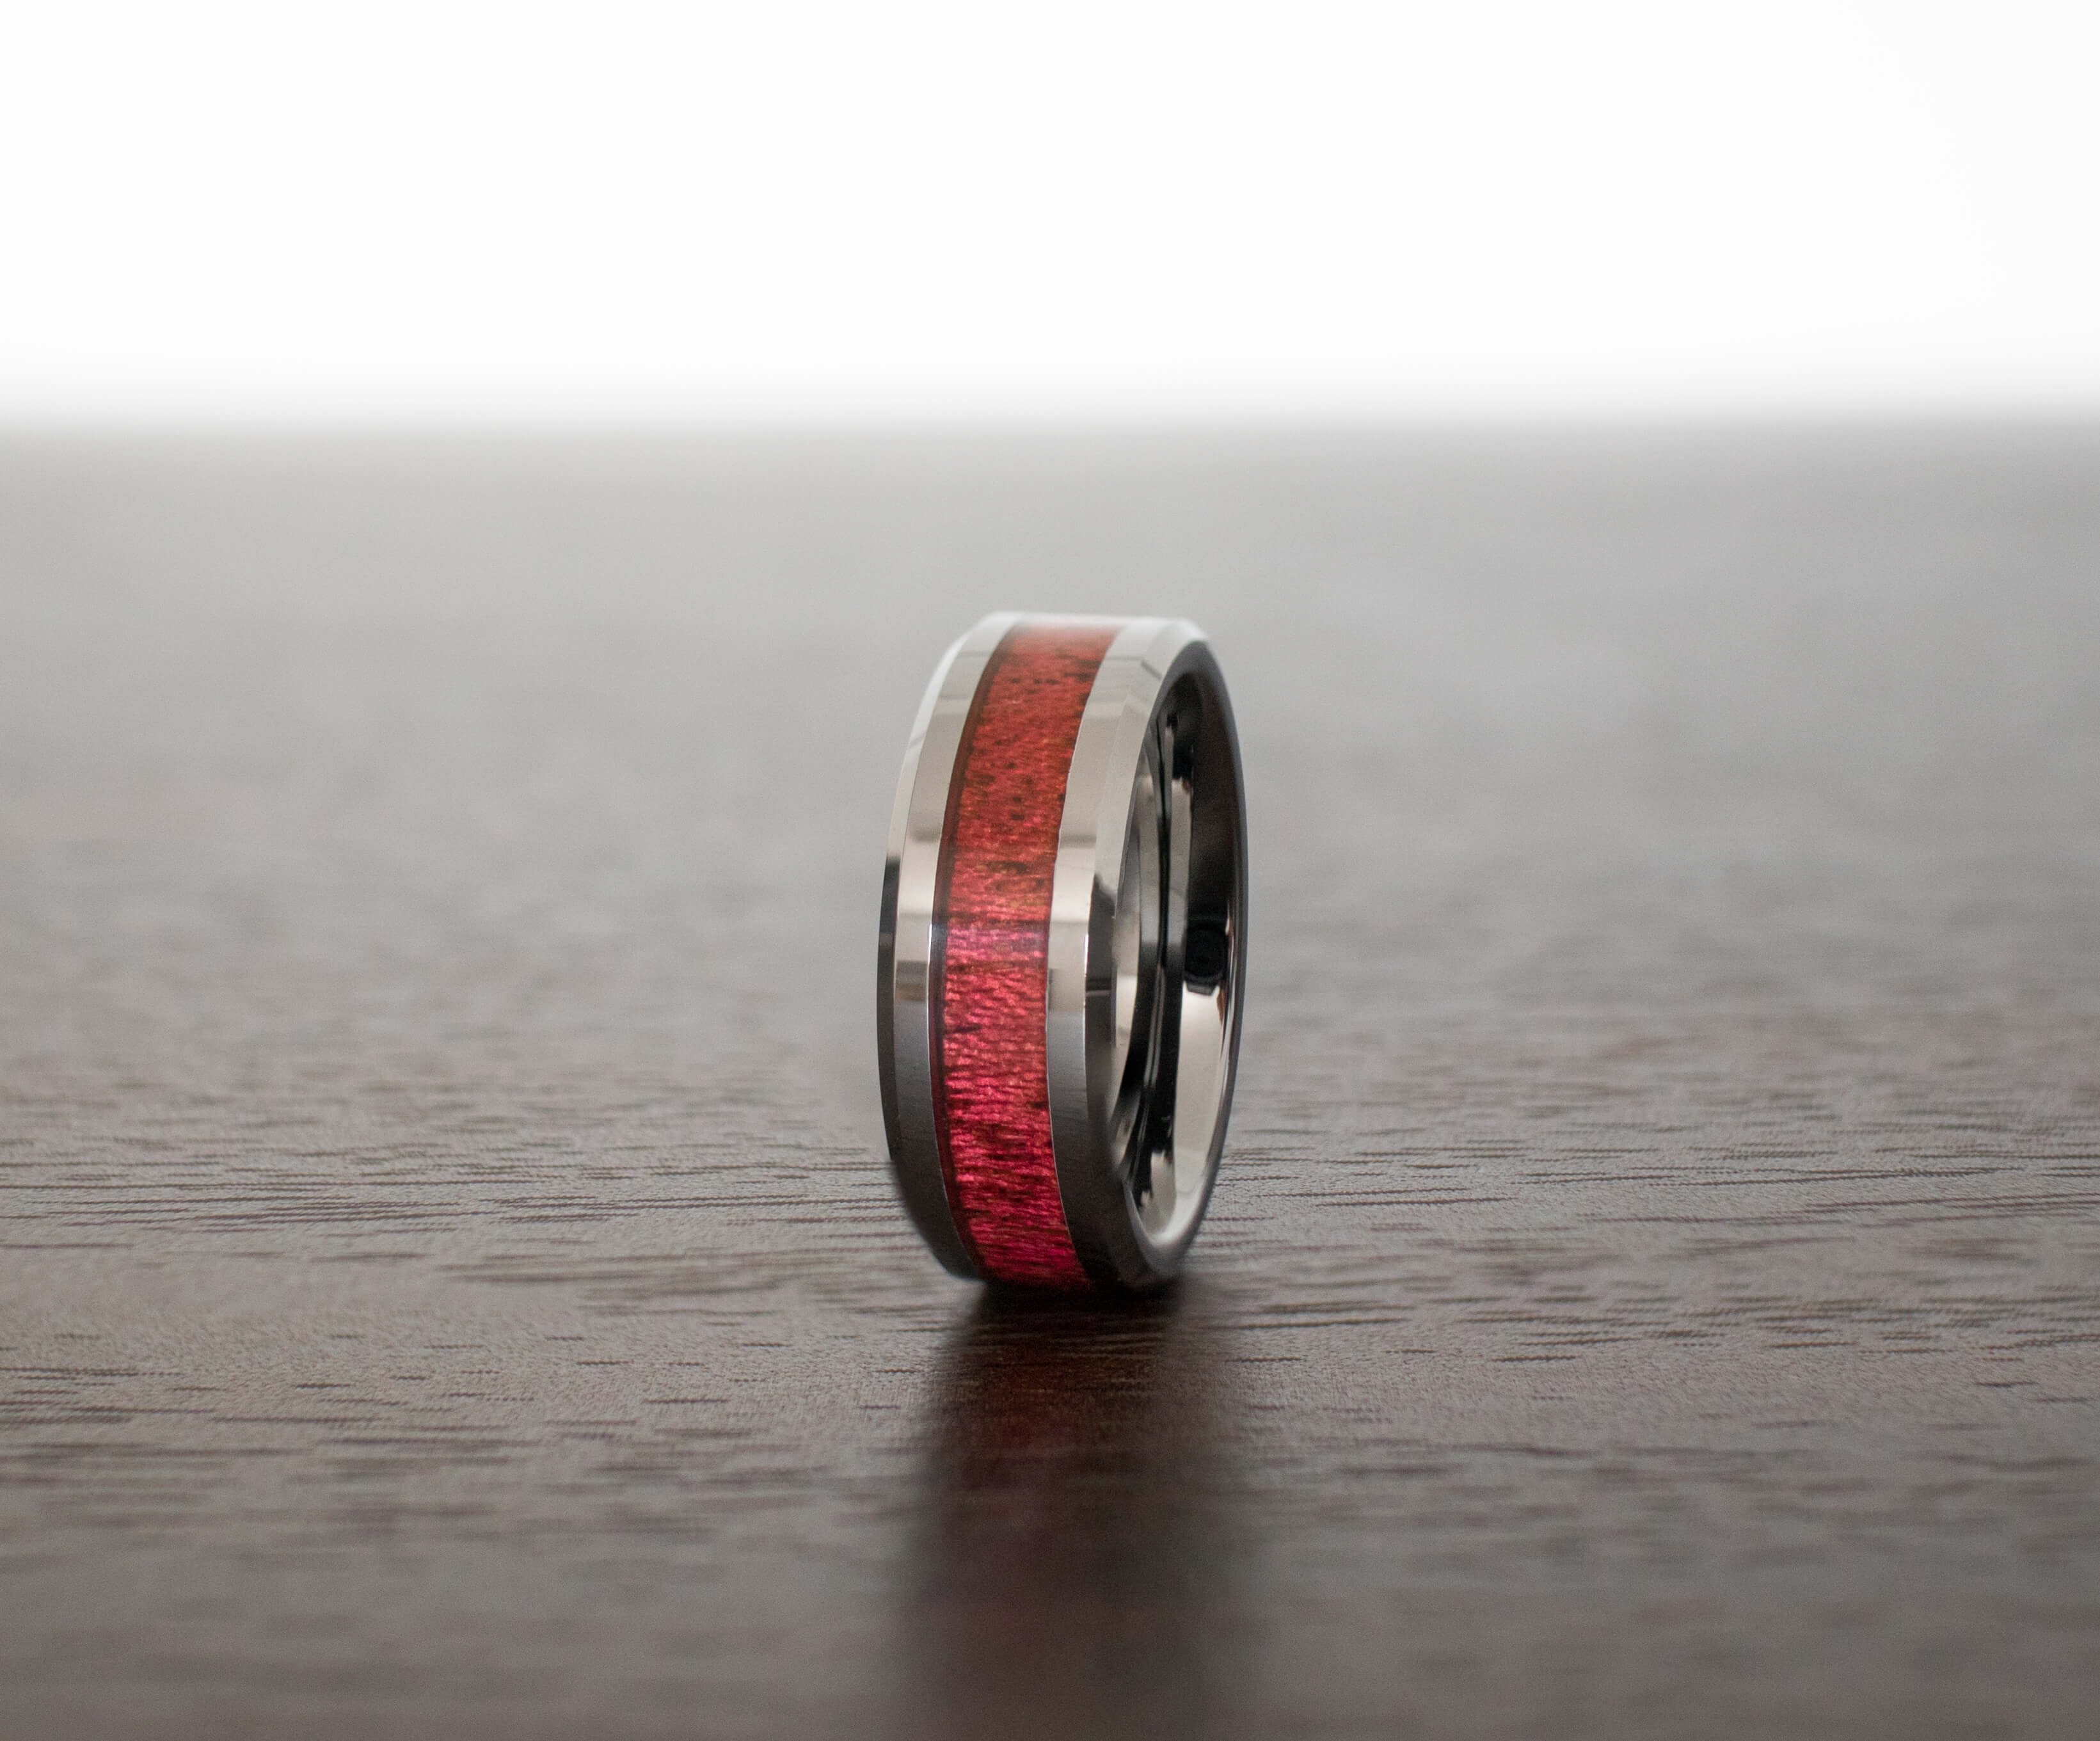 rosewood-mens-wedding-band-in-abalone-shell-on-table-with-slight-view